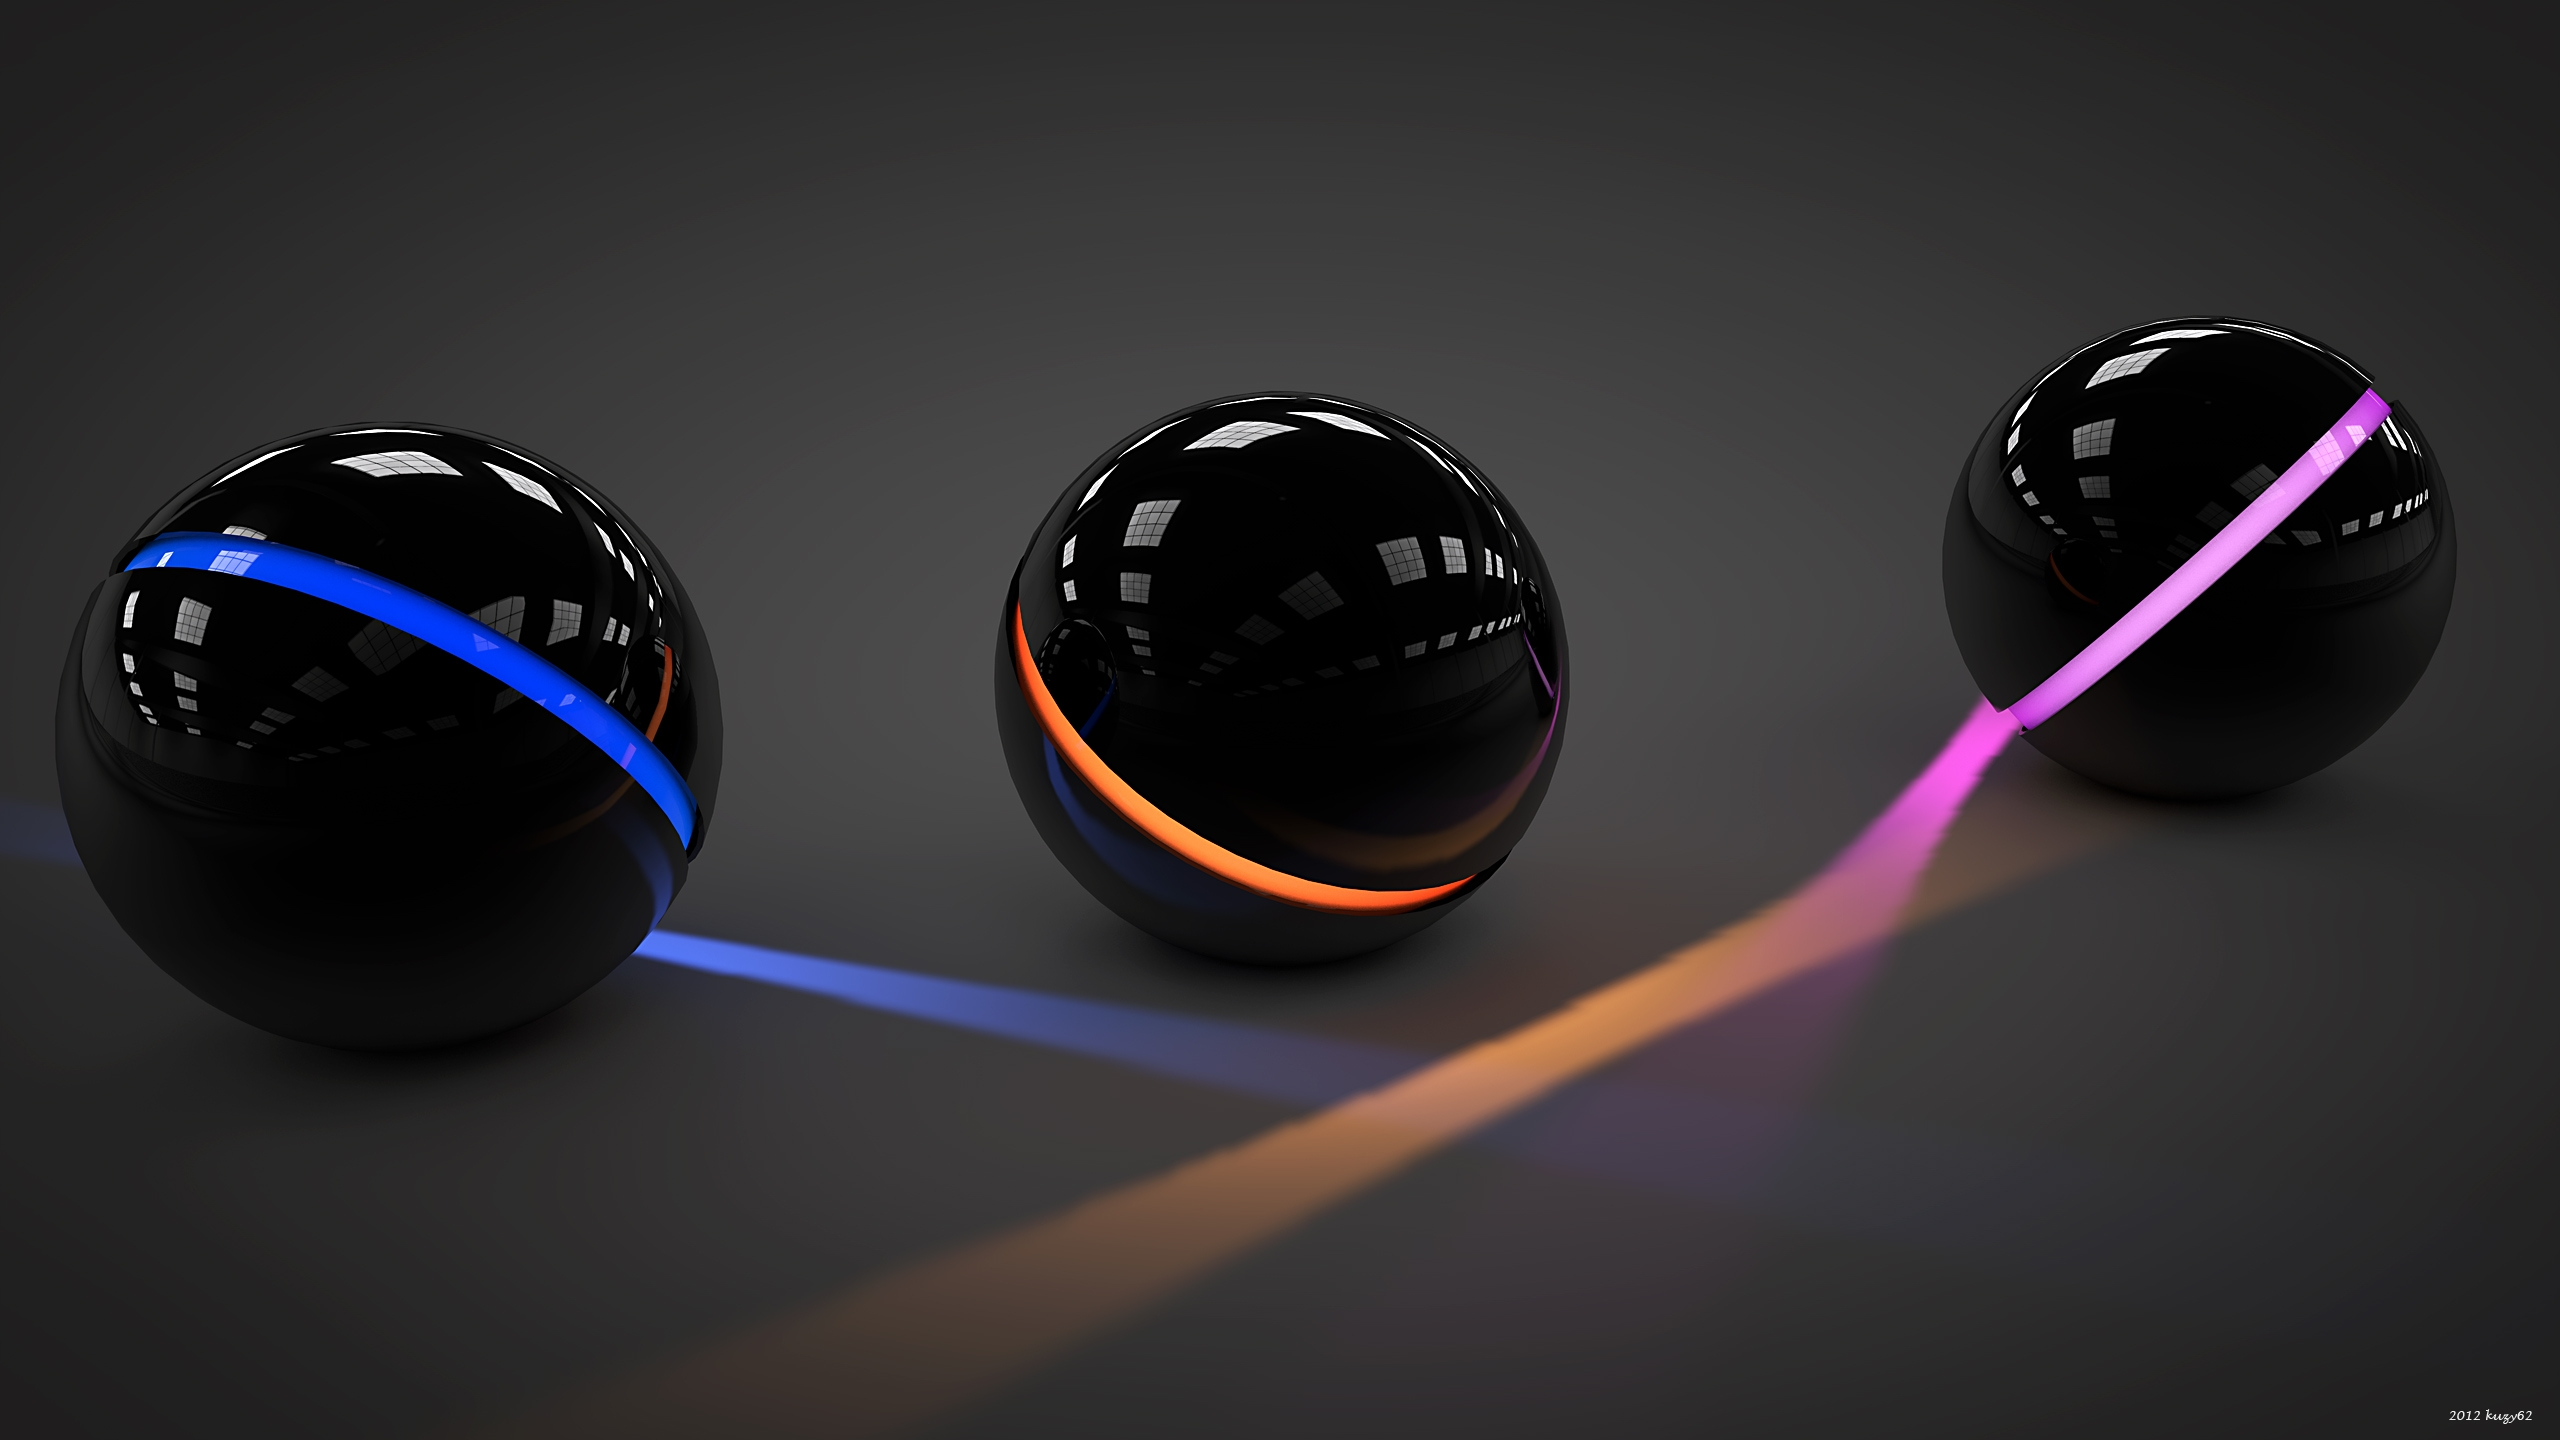 Balls Light Glass Neon 81360 2560 1440 Hd Wallpapers Download